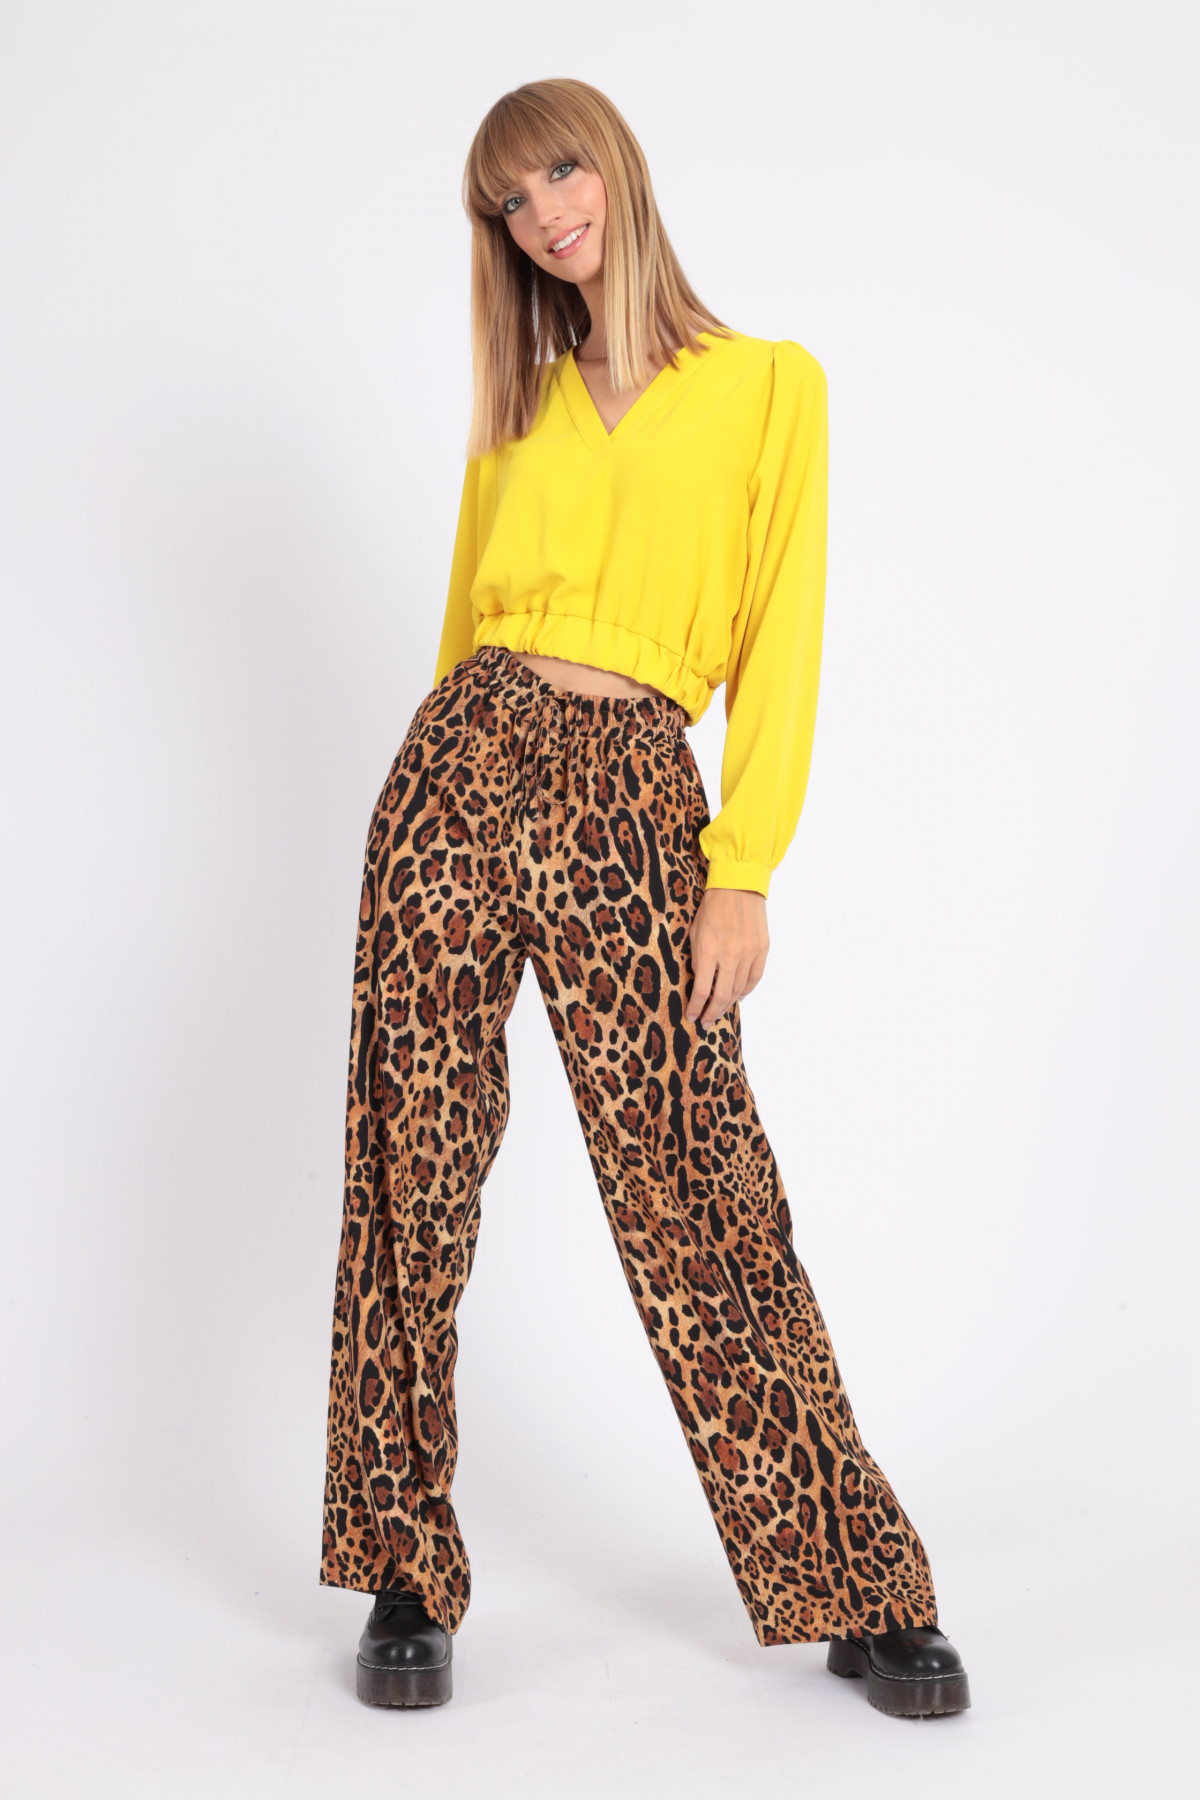 Pantaloni a Palazzo con Coulisse in Stampa Fantasia Animalier